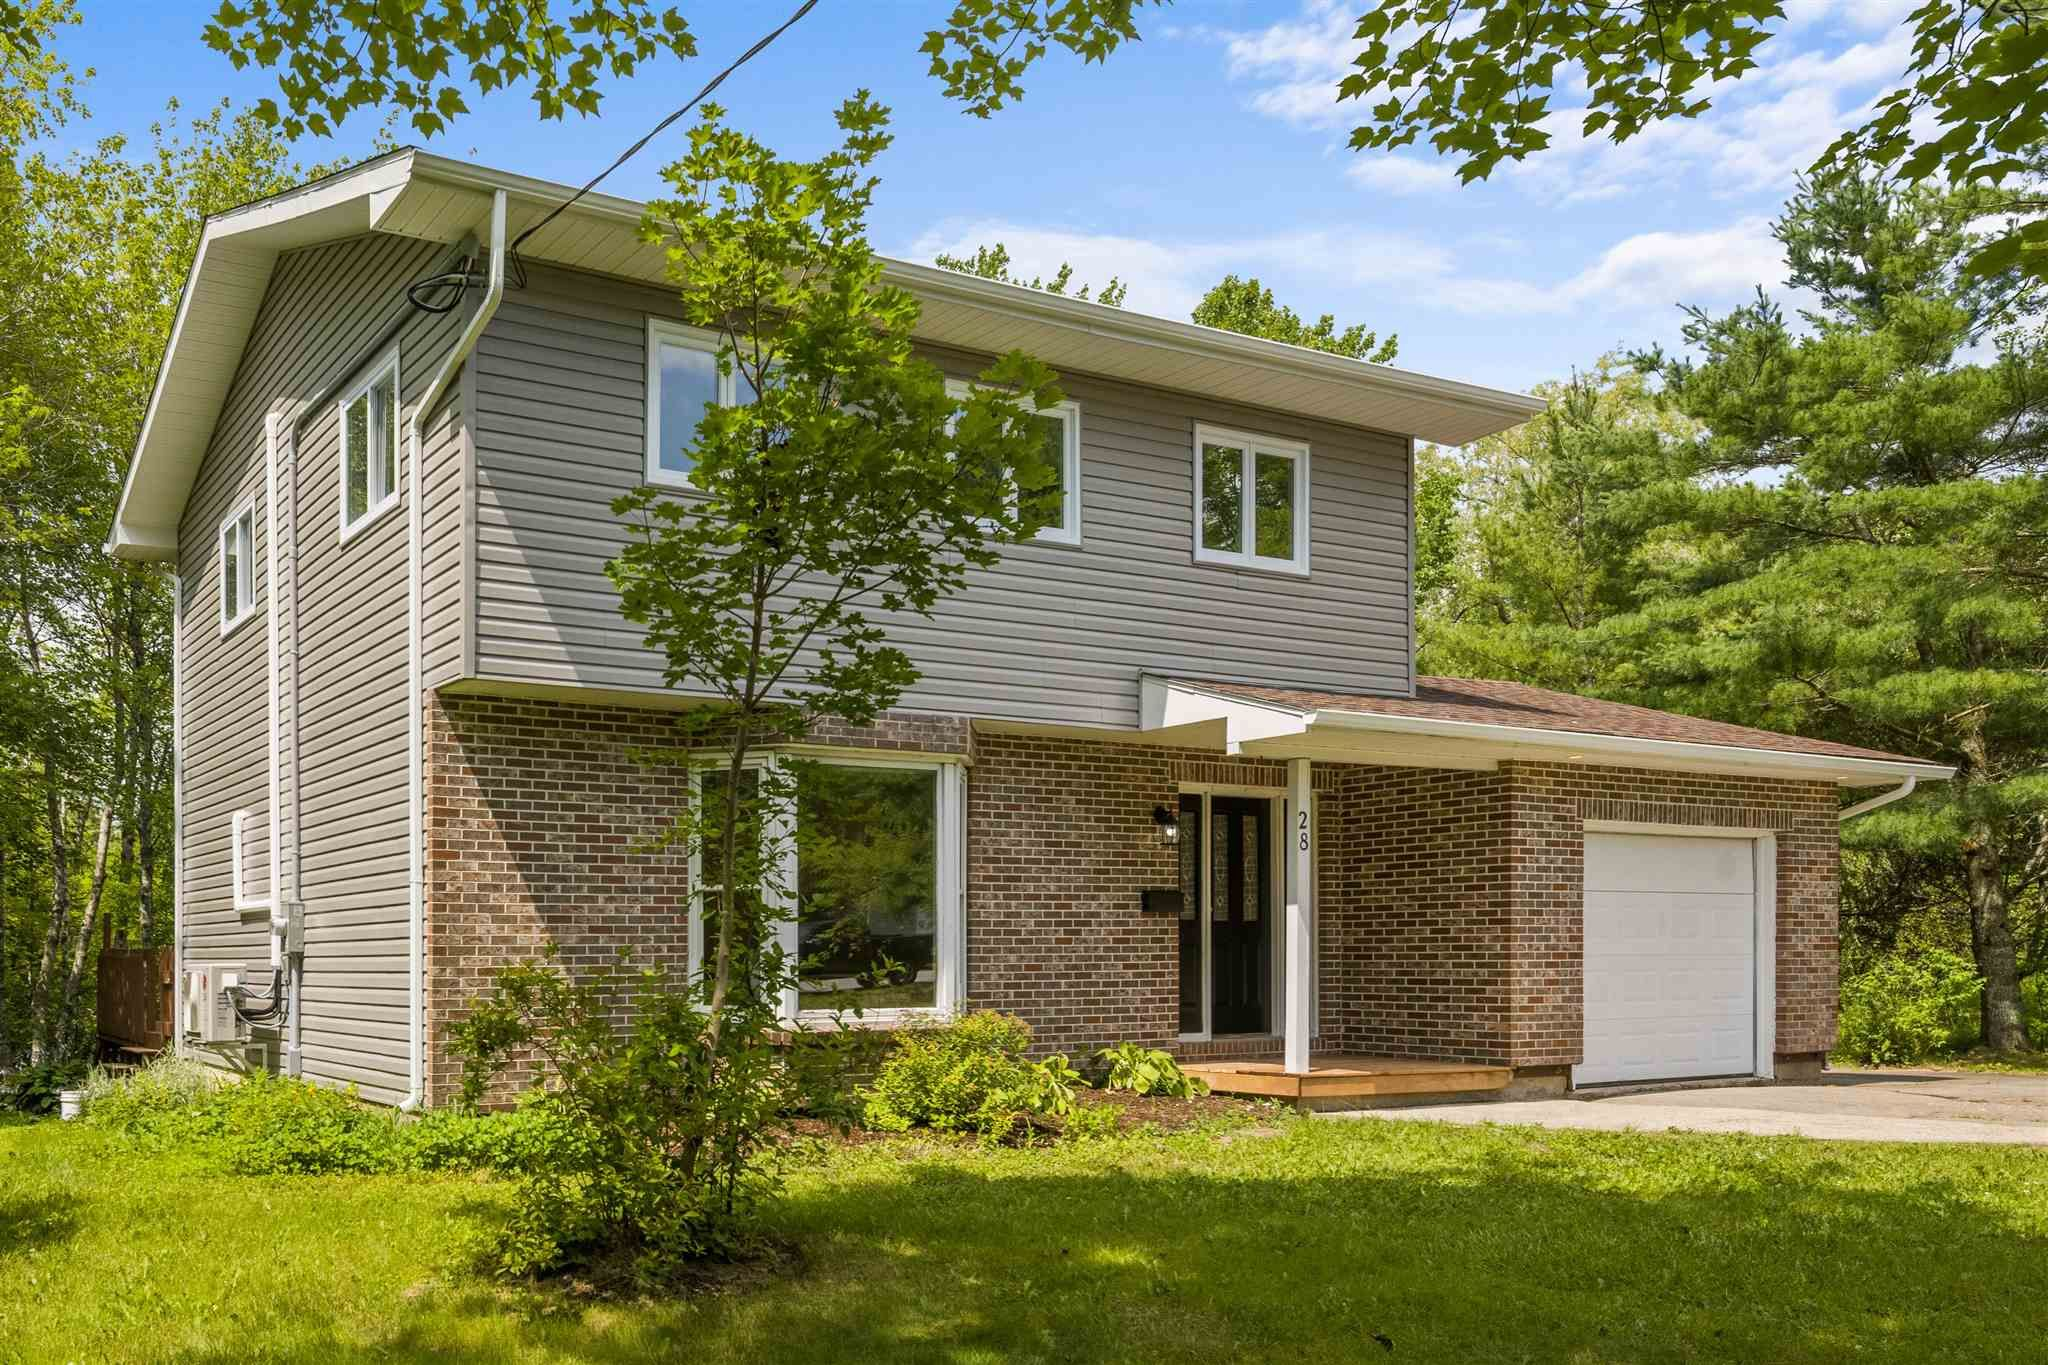 Main Photo: 28 Elmbel Road in Belnan: 105-East Hants/Colchester West Residential for sale (Halifax-Dartmouth)  : MLS®# 202118854